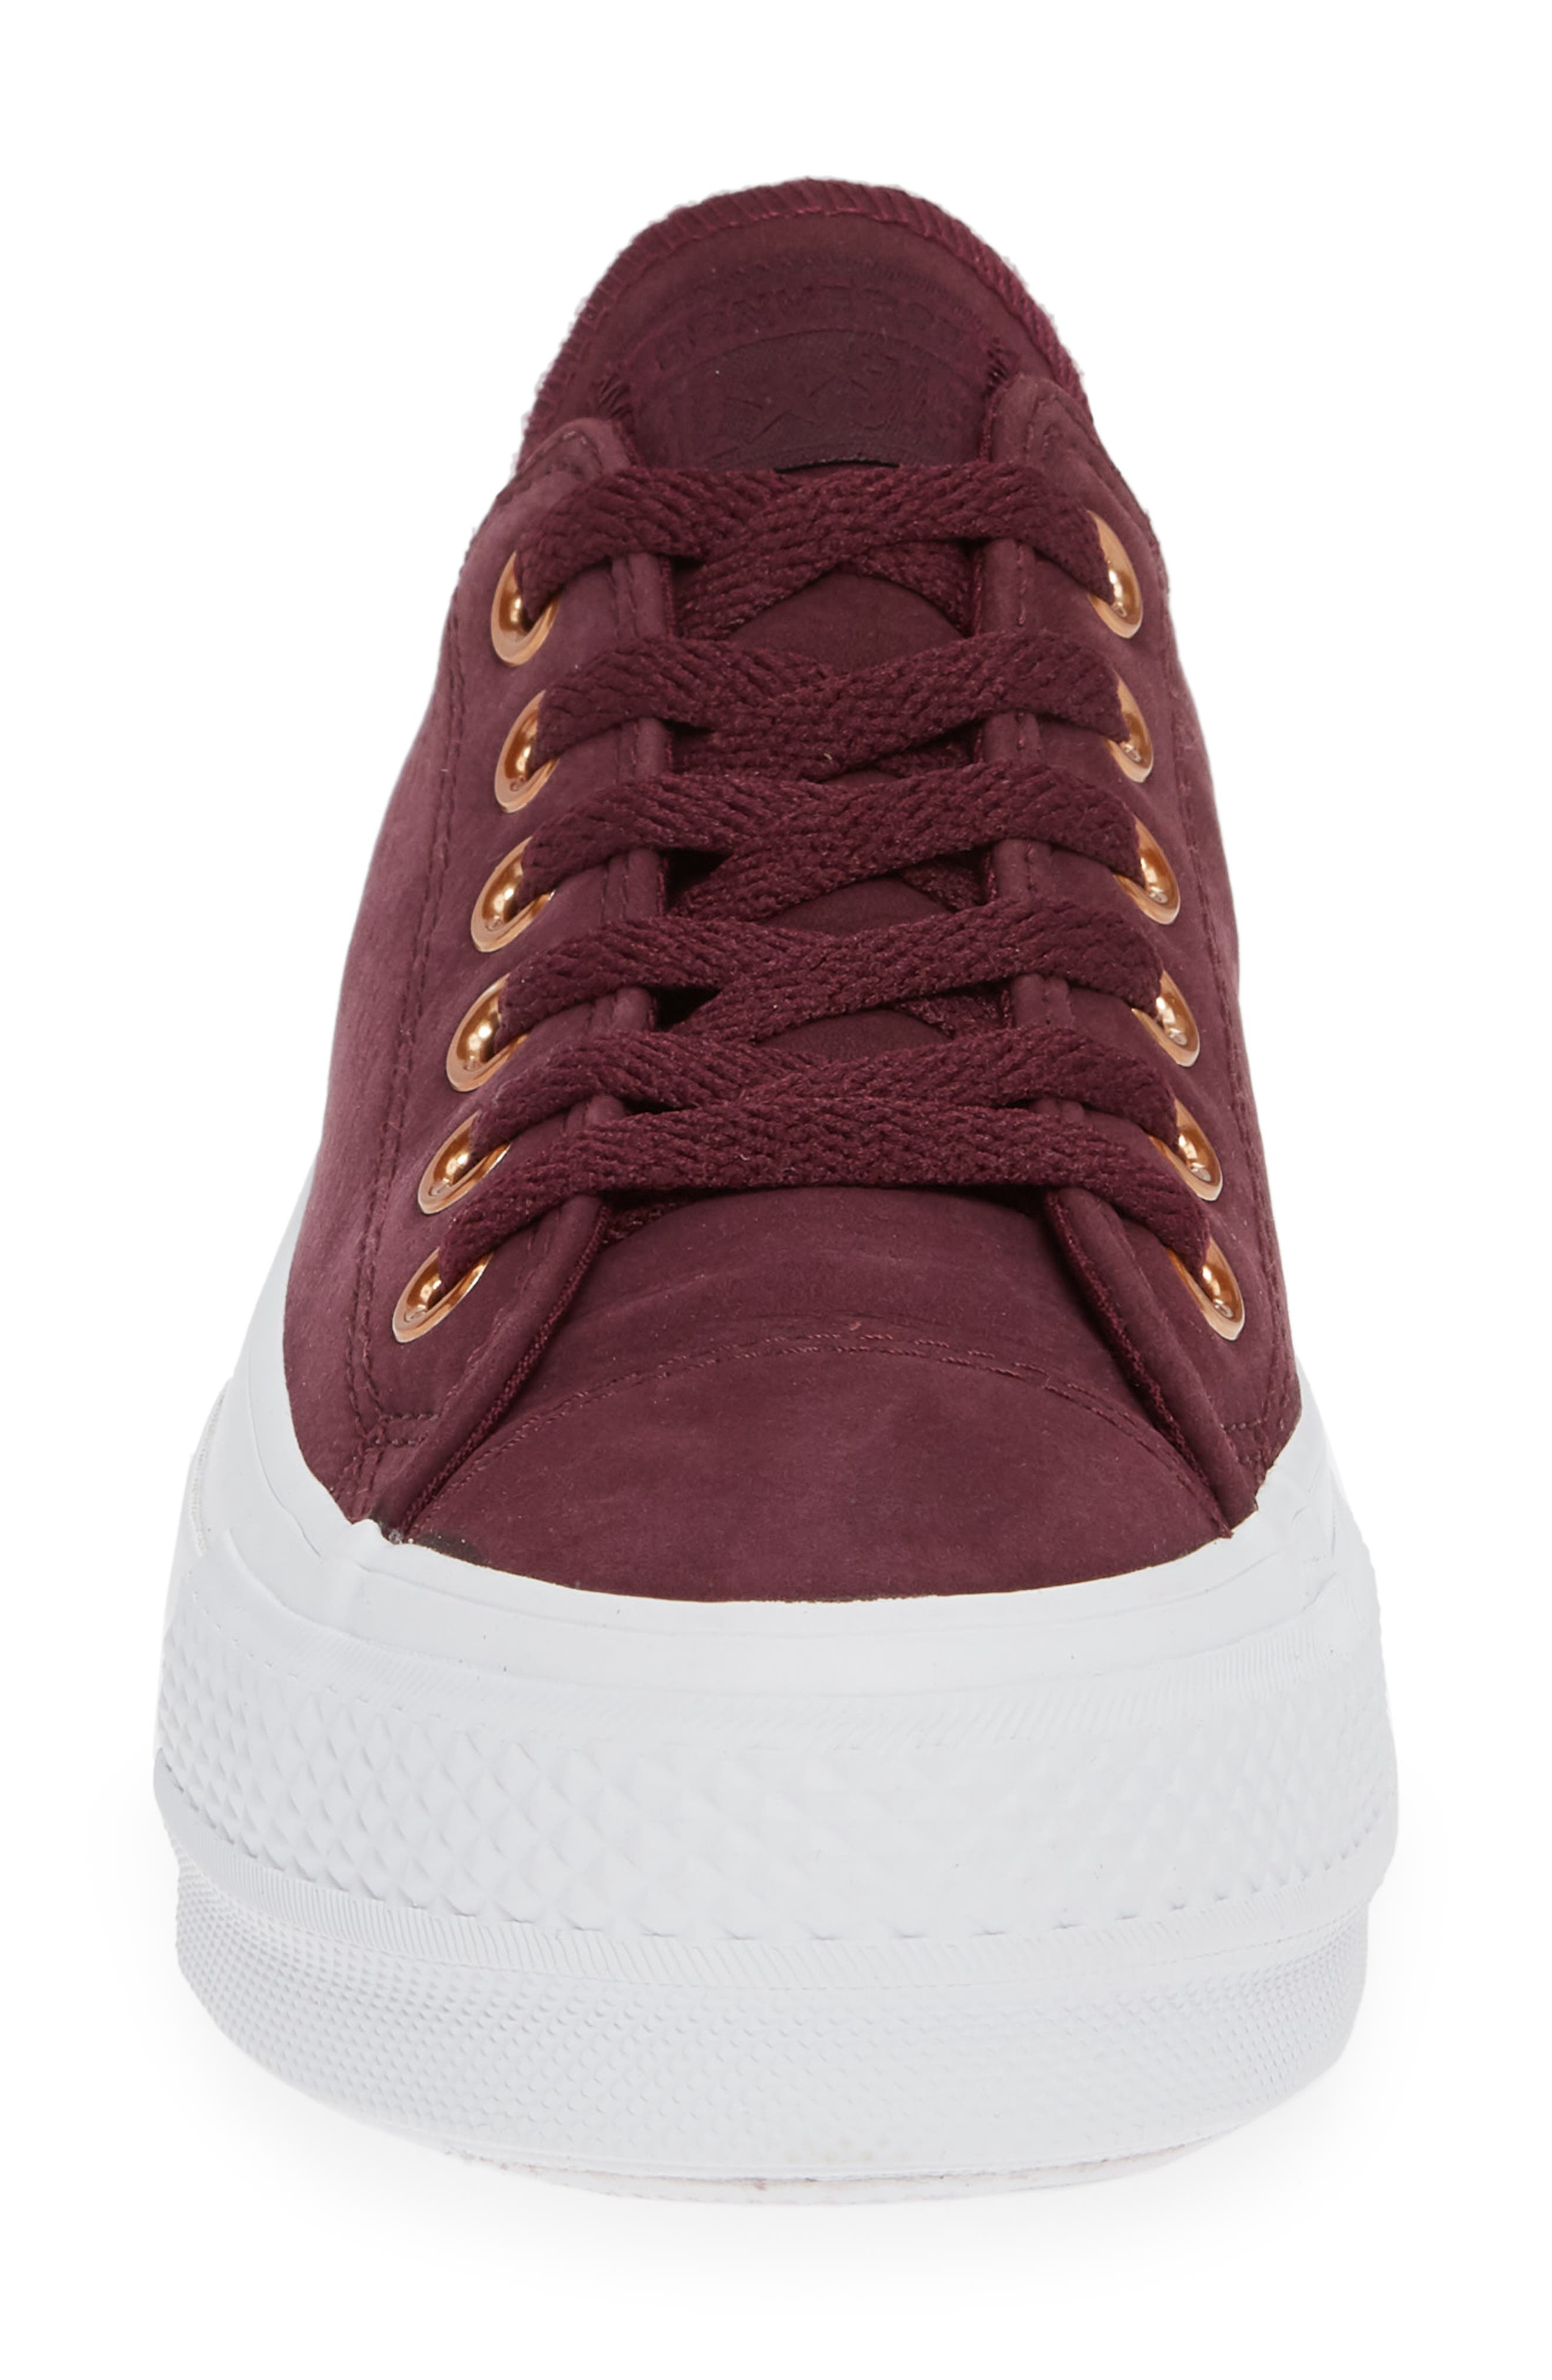 Chuck Taylor<sup>®</sup> All Star<sup>®</sup> Platform Sneaker,                             Alternate thumbnail 4, color,                             DARK SANGRIA NUBUCK